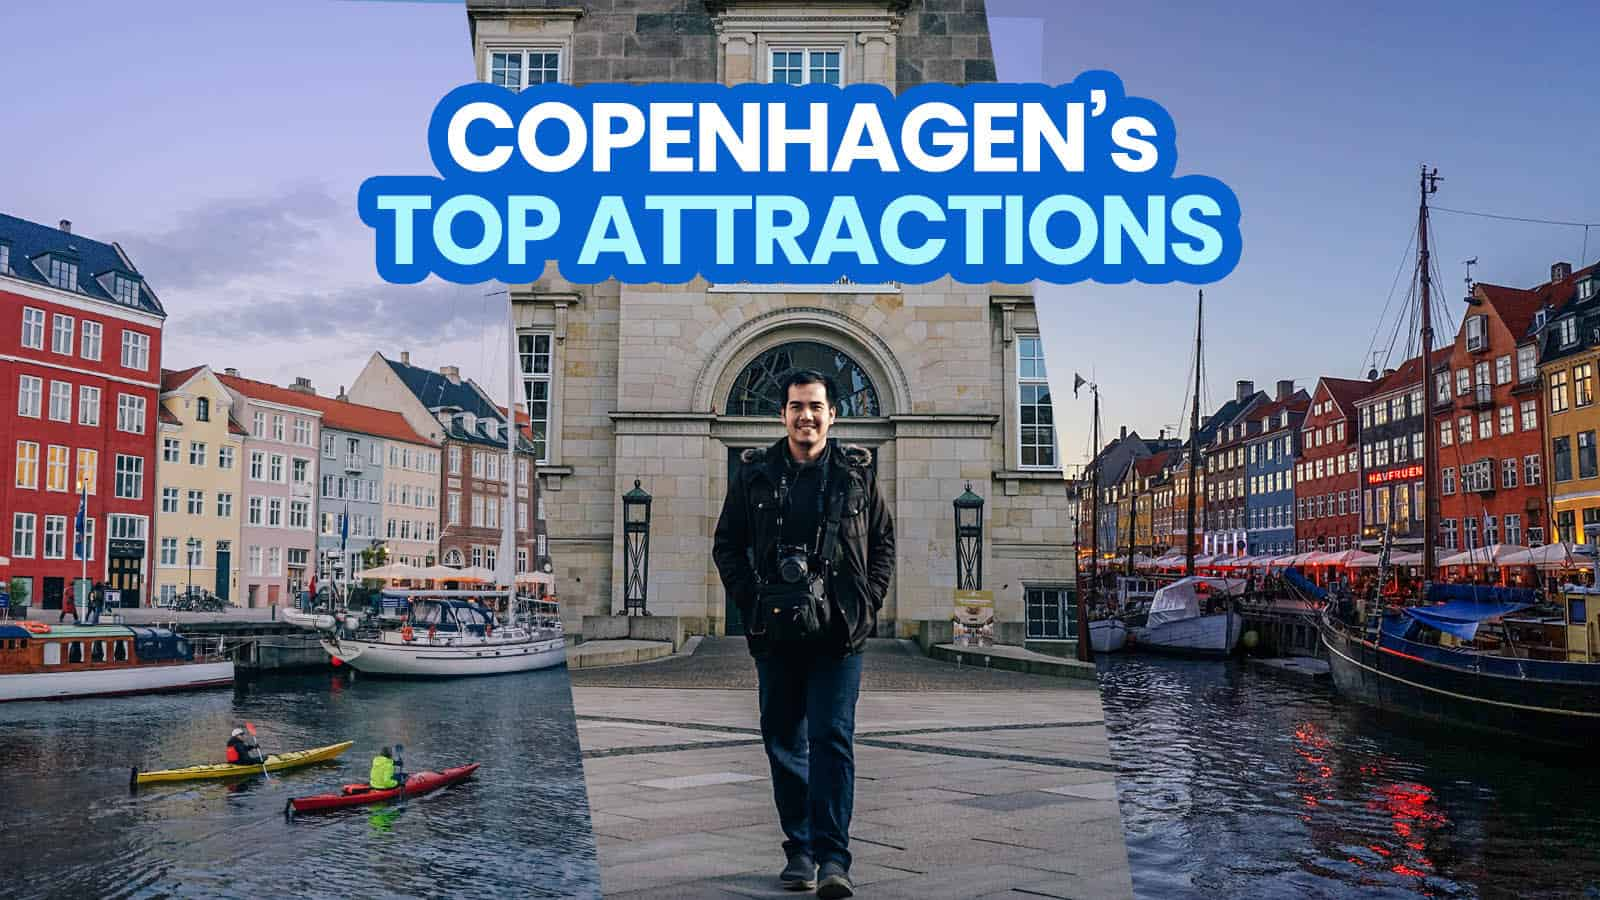 COPENHAGEN: 22 Best Things to Do & Places to Visit